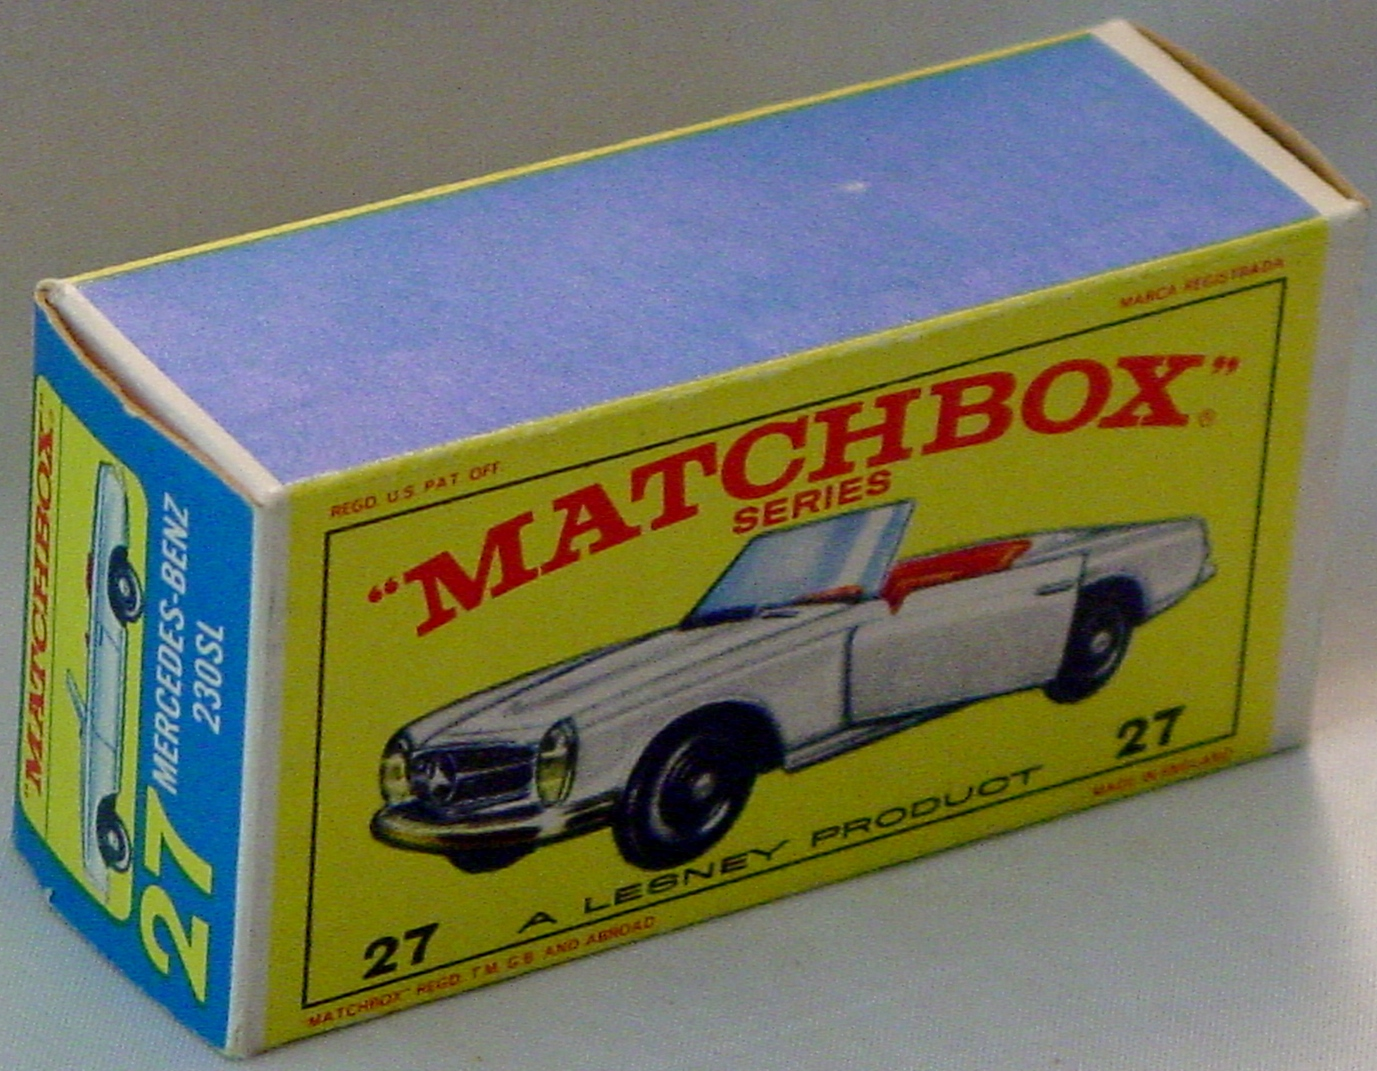 Empty Box 27 D - C9.5 E4 BOX ONLY